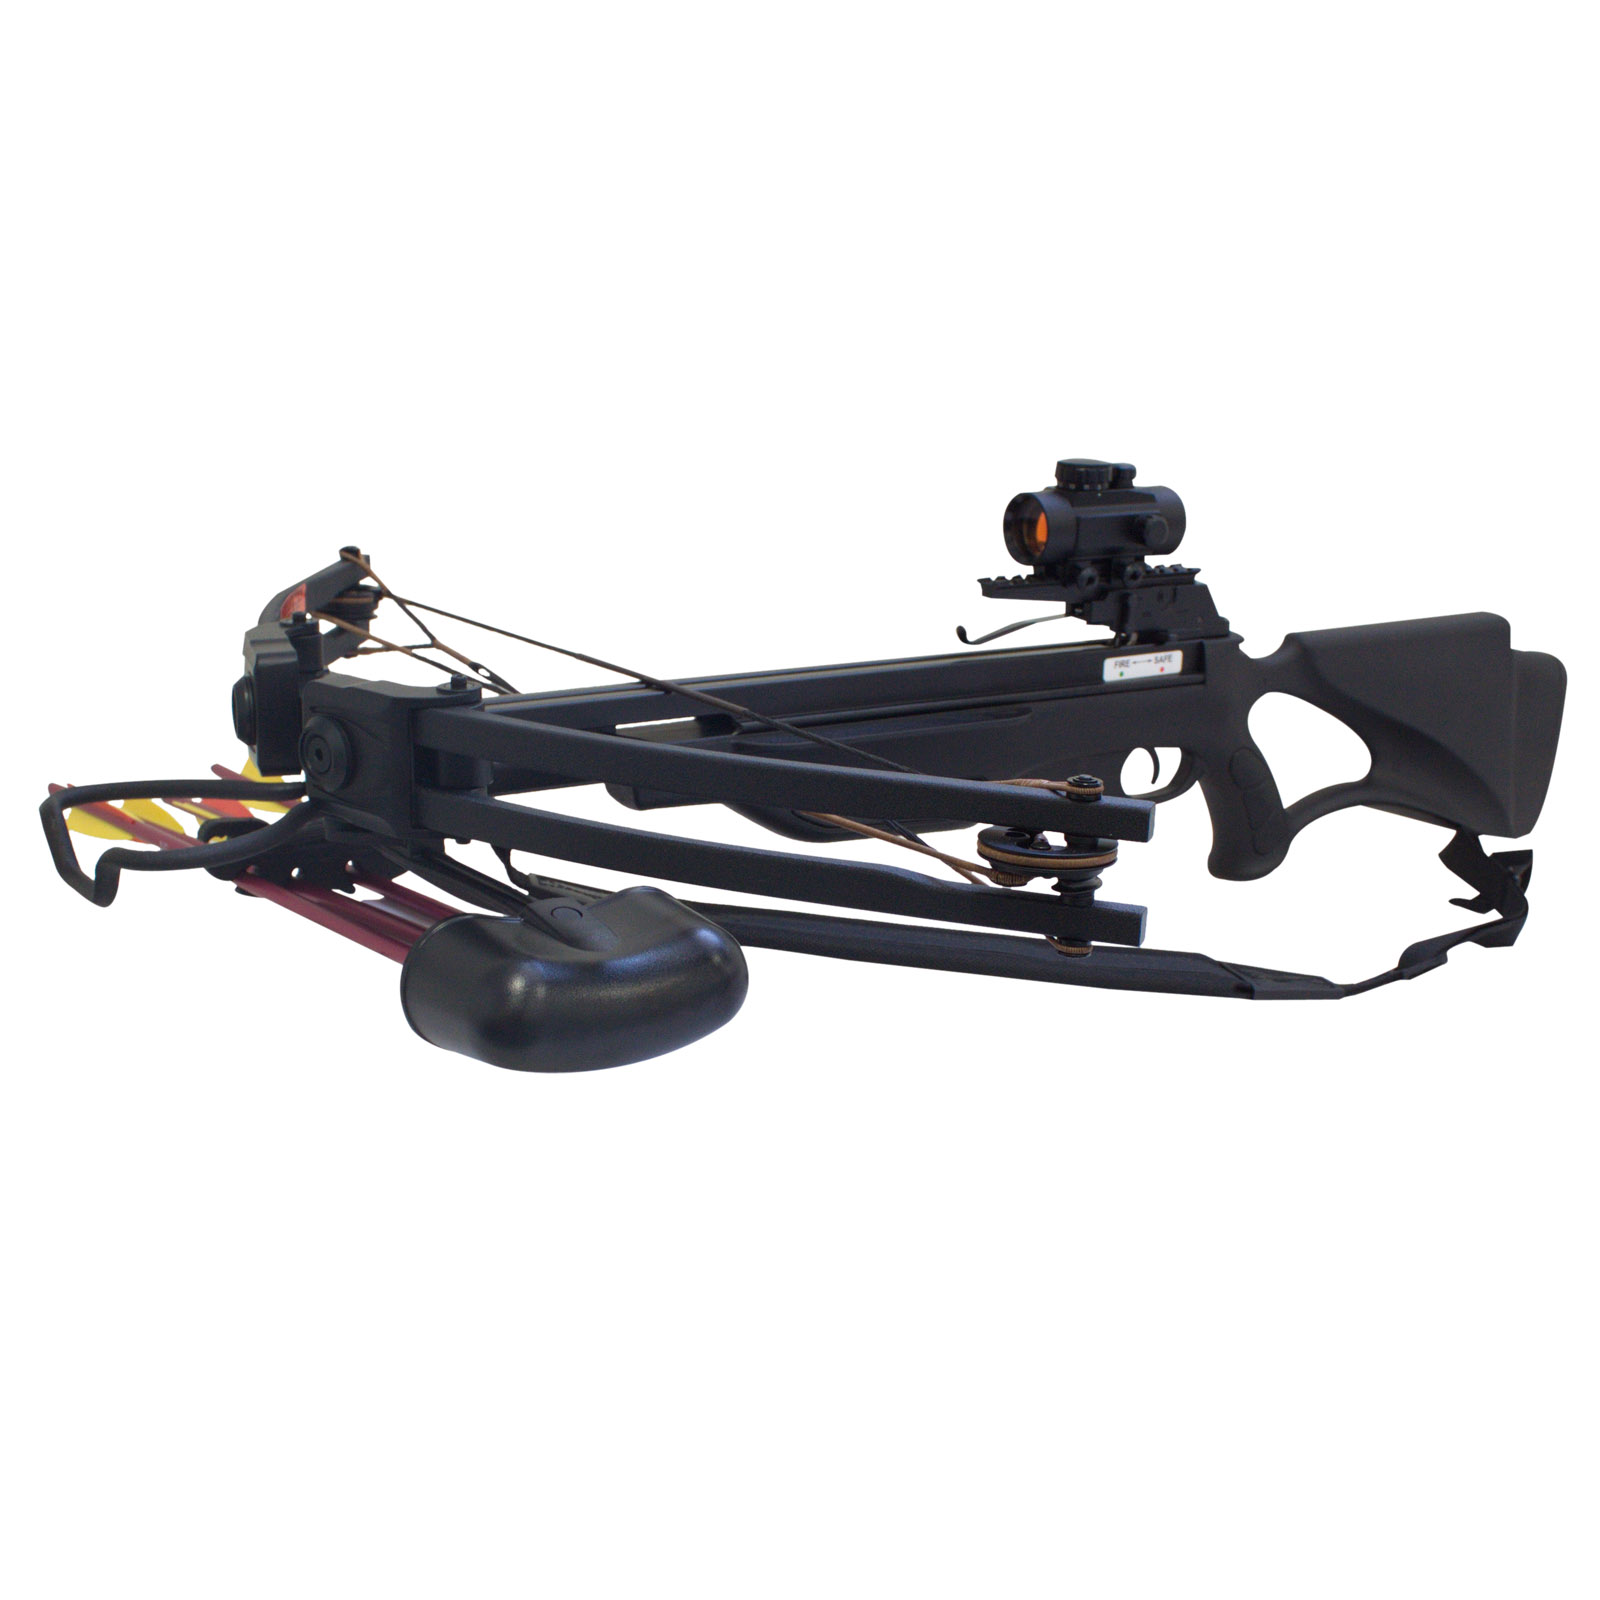 SAS Terrain 175lbs Crossbow Red Dot Scope Package by